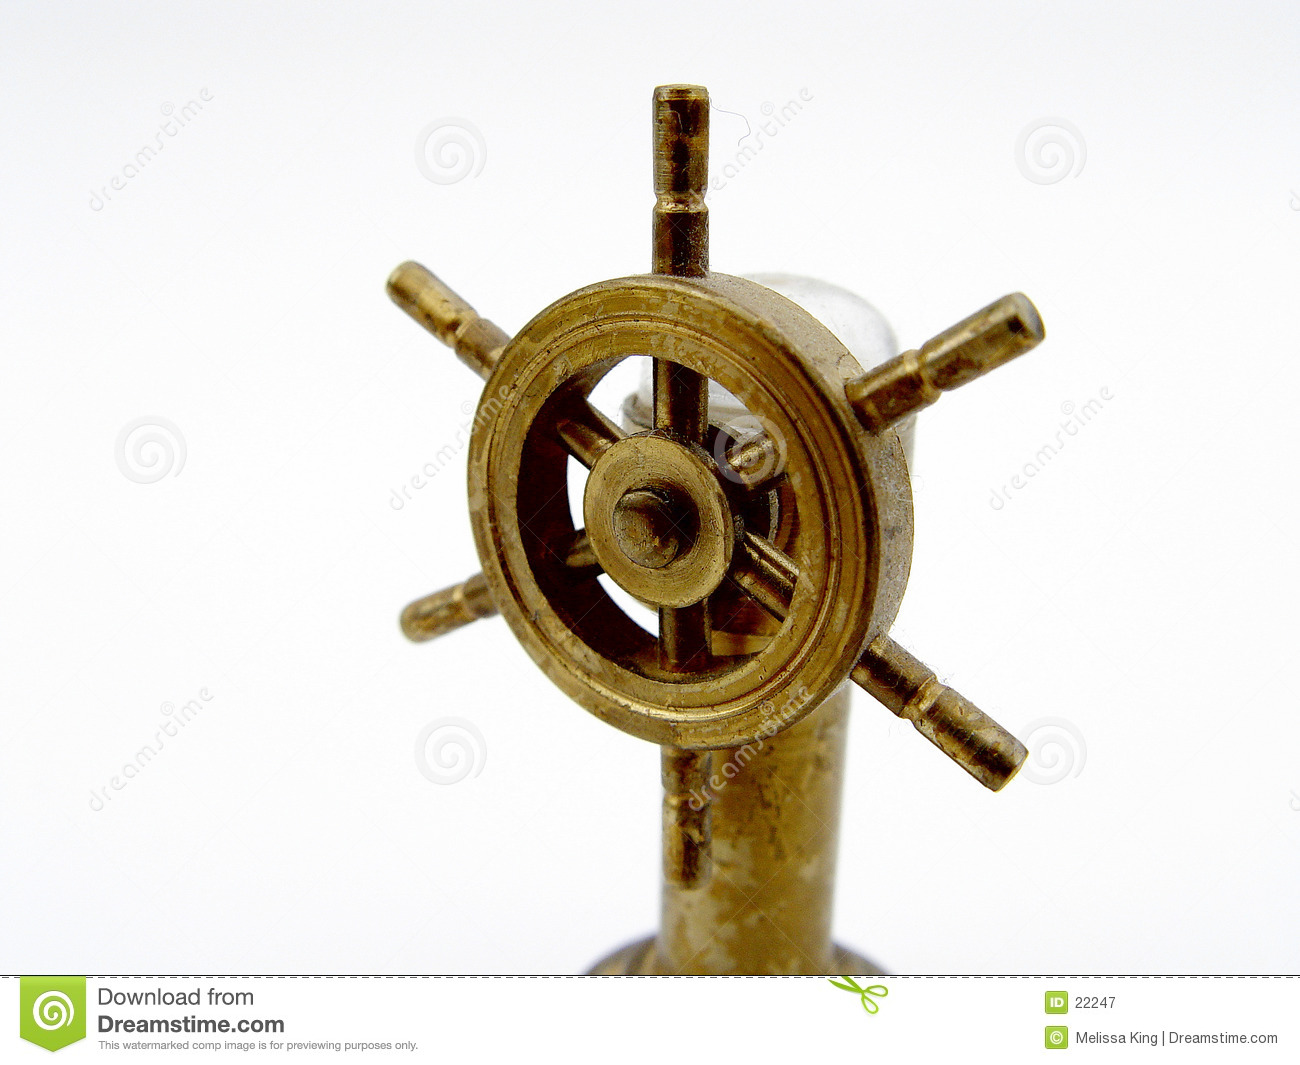 Boat Wheel isolated on white background, used for driving a boat.